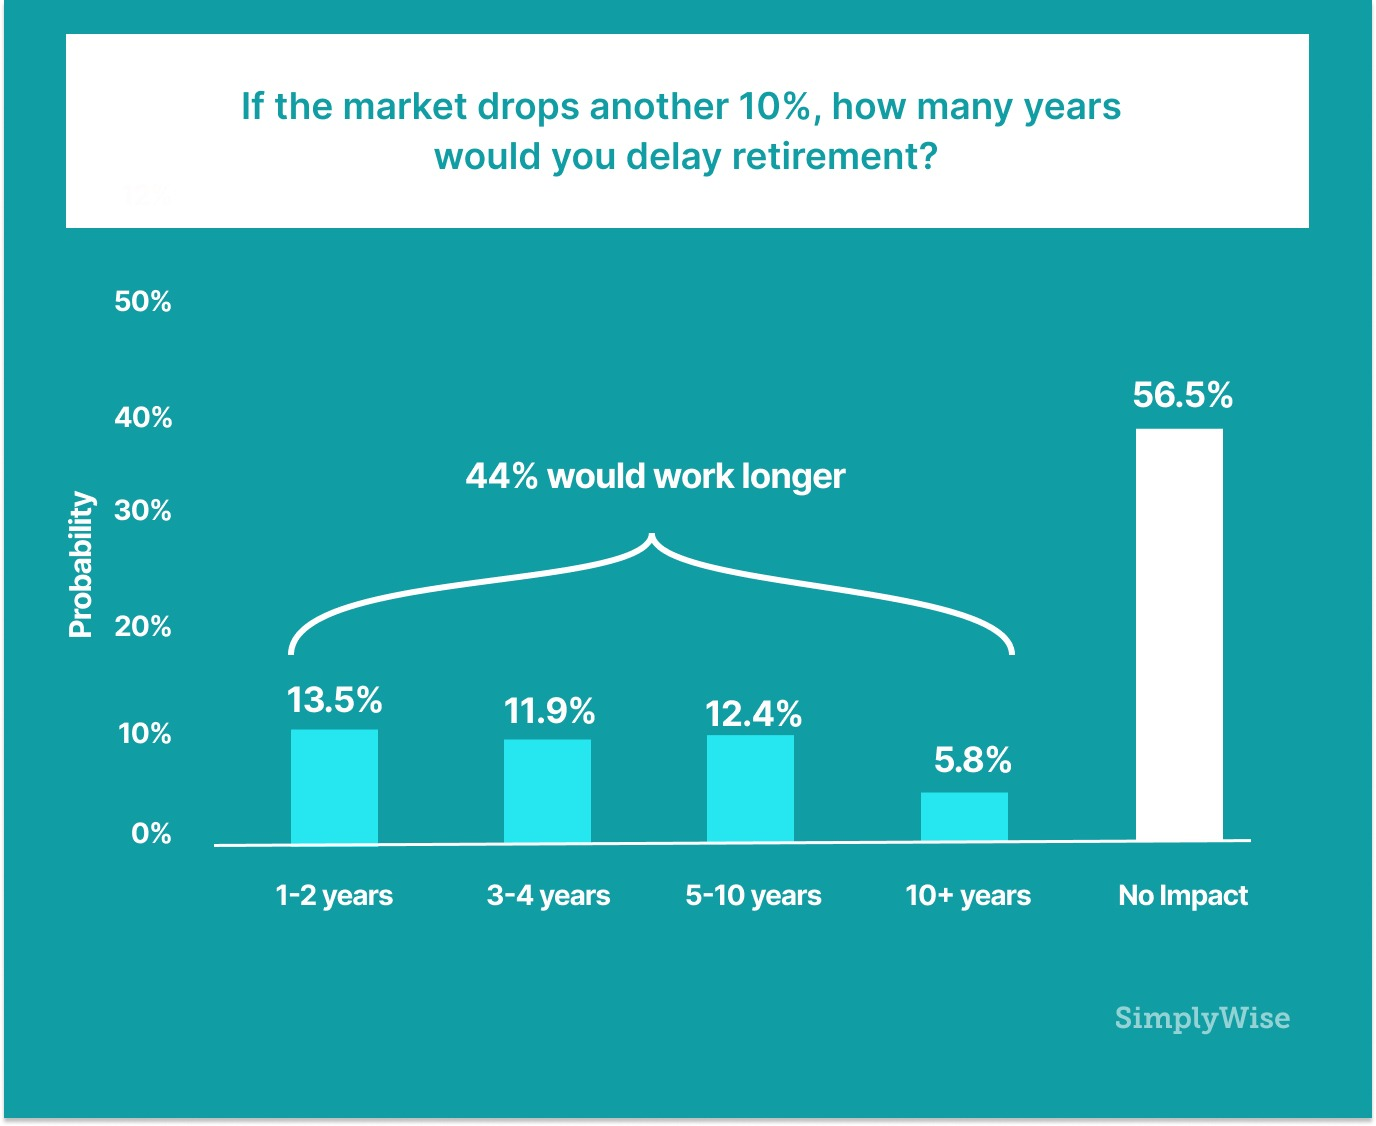 Simplywise Probability of how many years would you delay retirement be if the market drops 10%